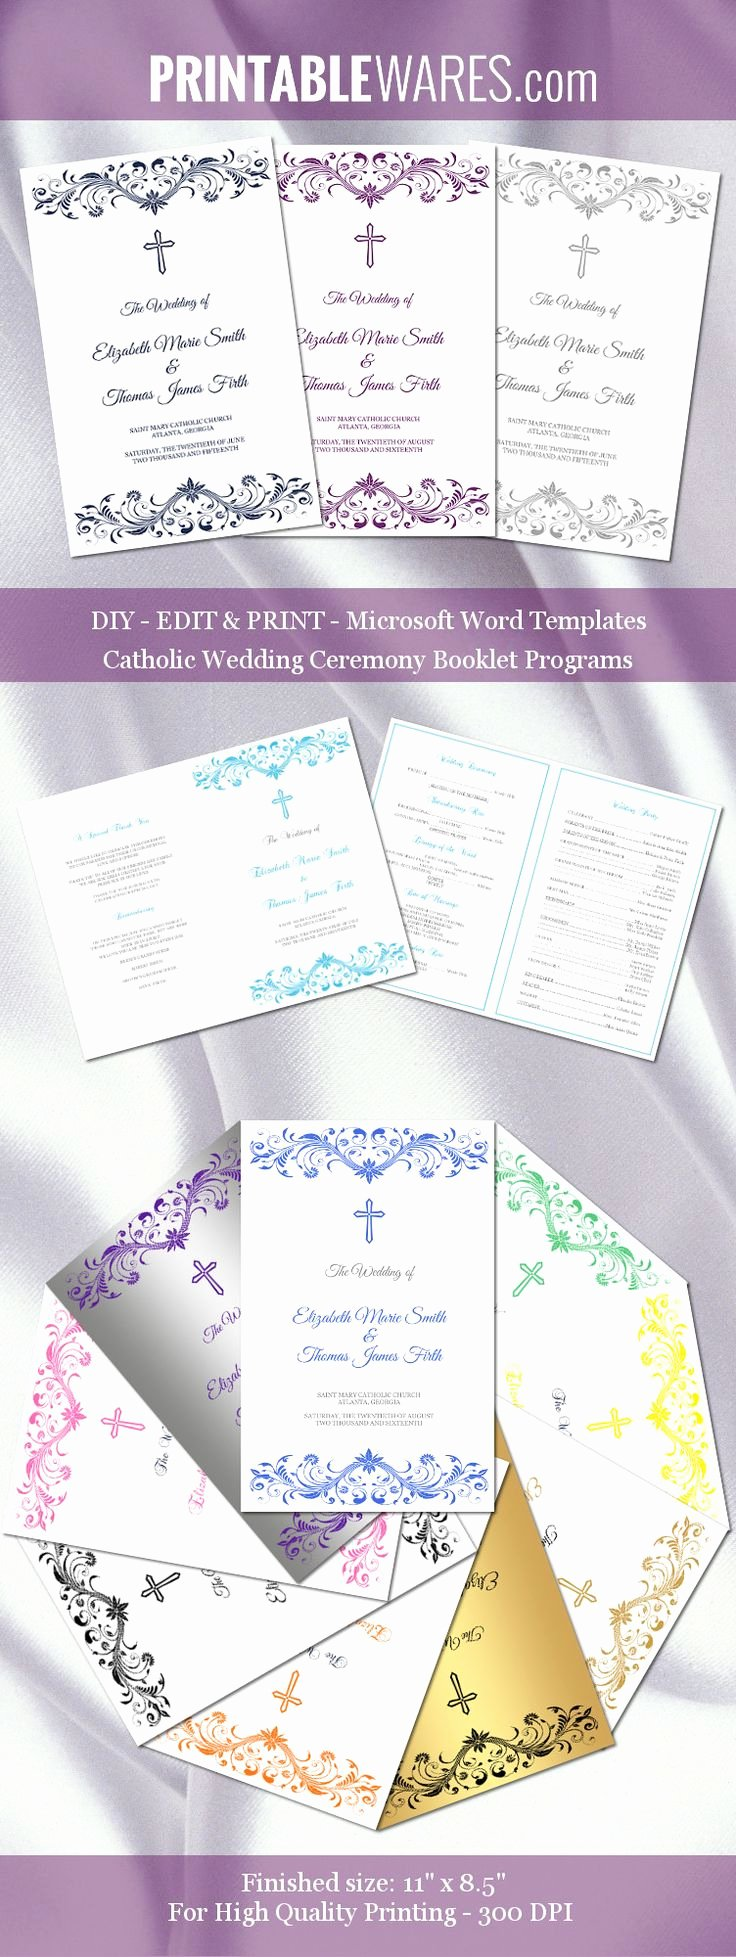 Catholic Mass Program Template Luxury Catholic Wedding Program Templates for Microsoft Word You